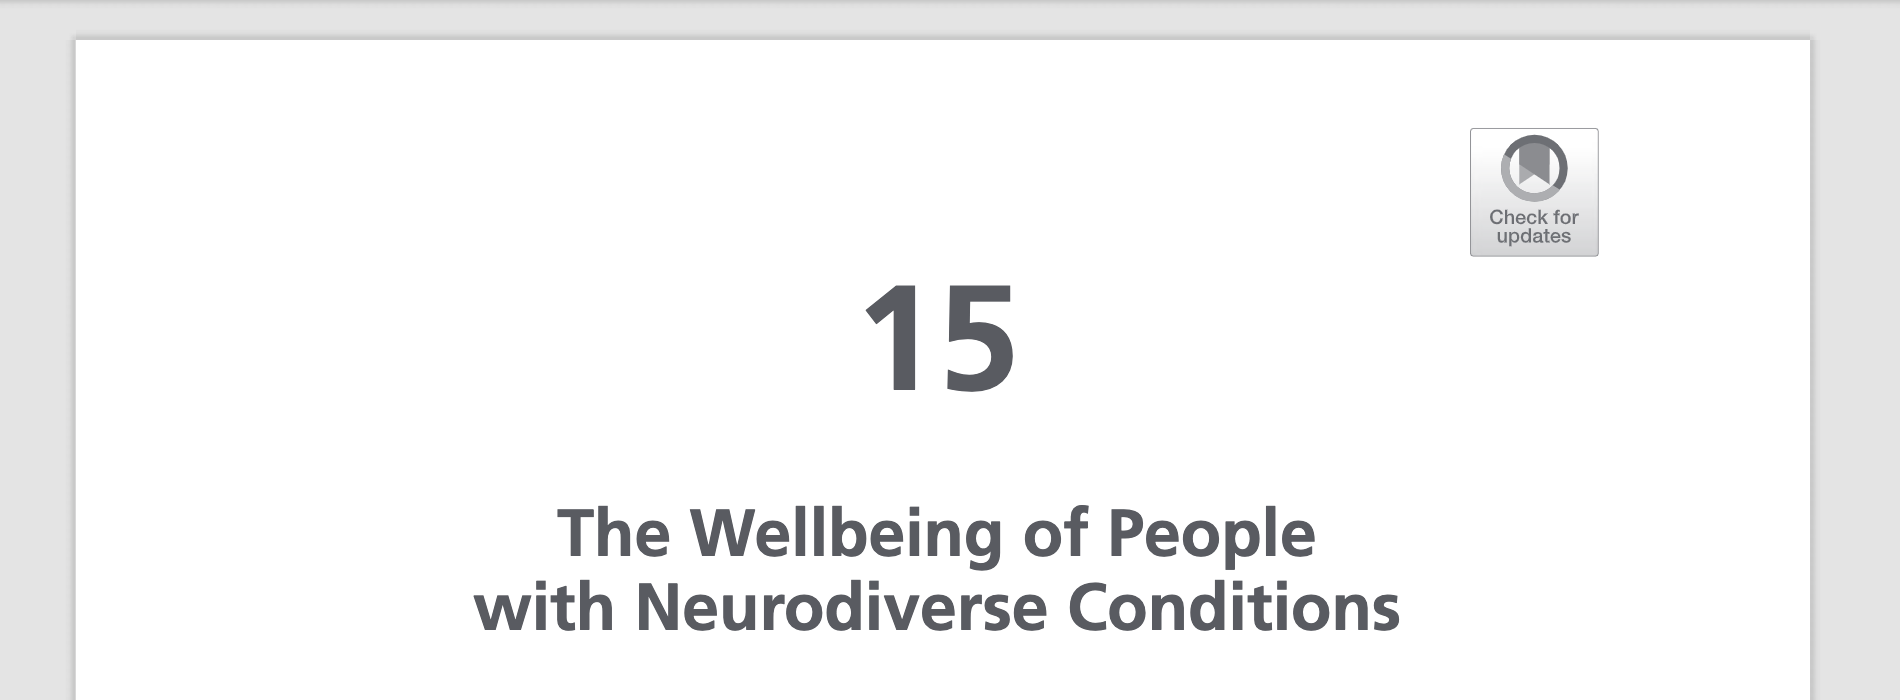 Wellbeing of People with Neurodiverse Conditions